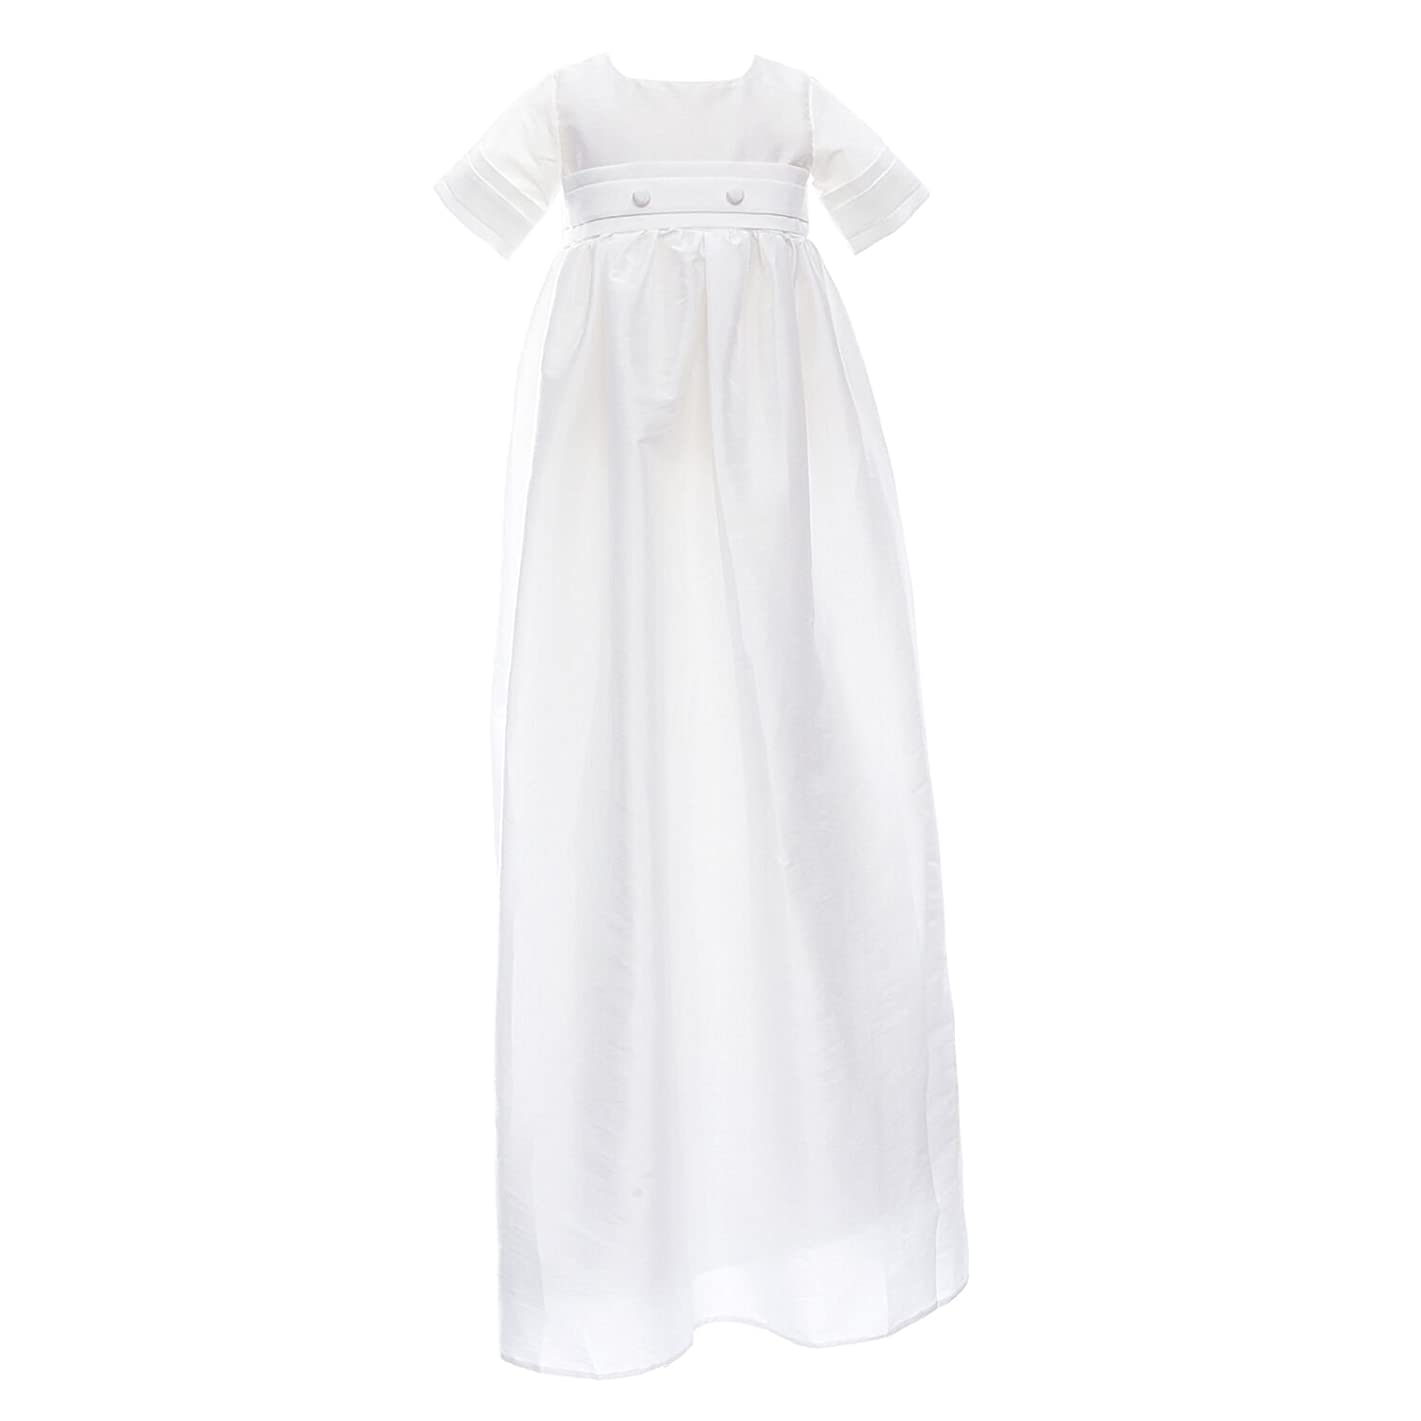 Castle Fairy 2018 Baby Boys Girls Christening Long Gown Baptism Formal Hollow Communion Dresses With Hat